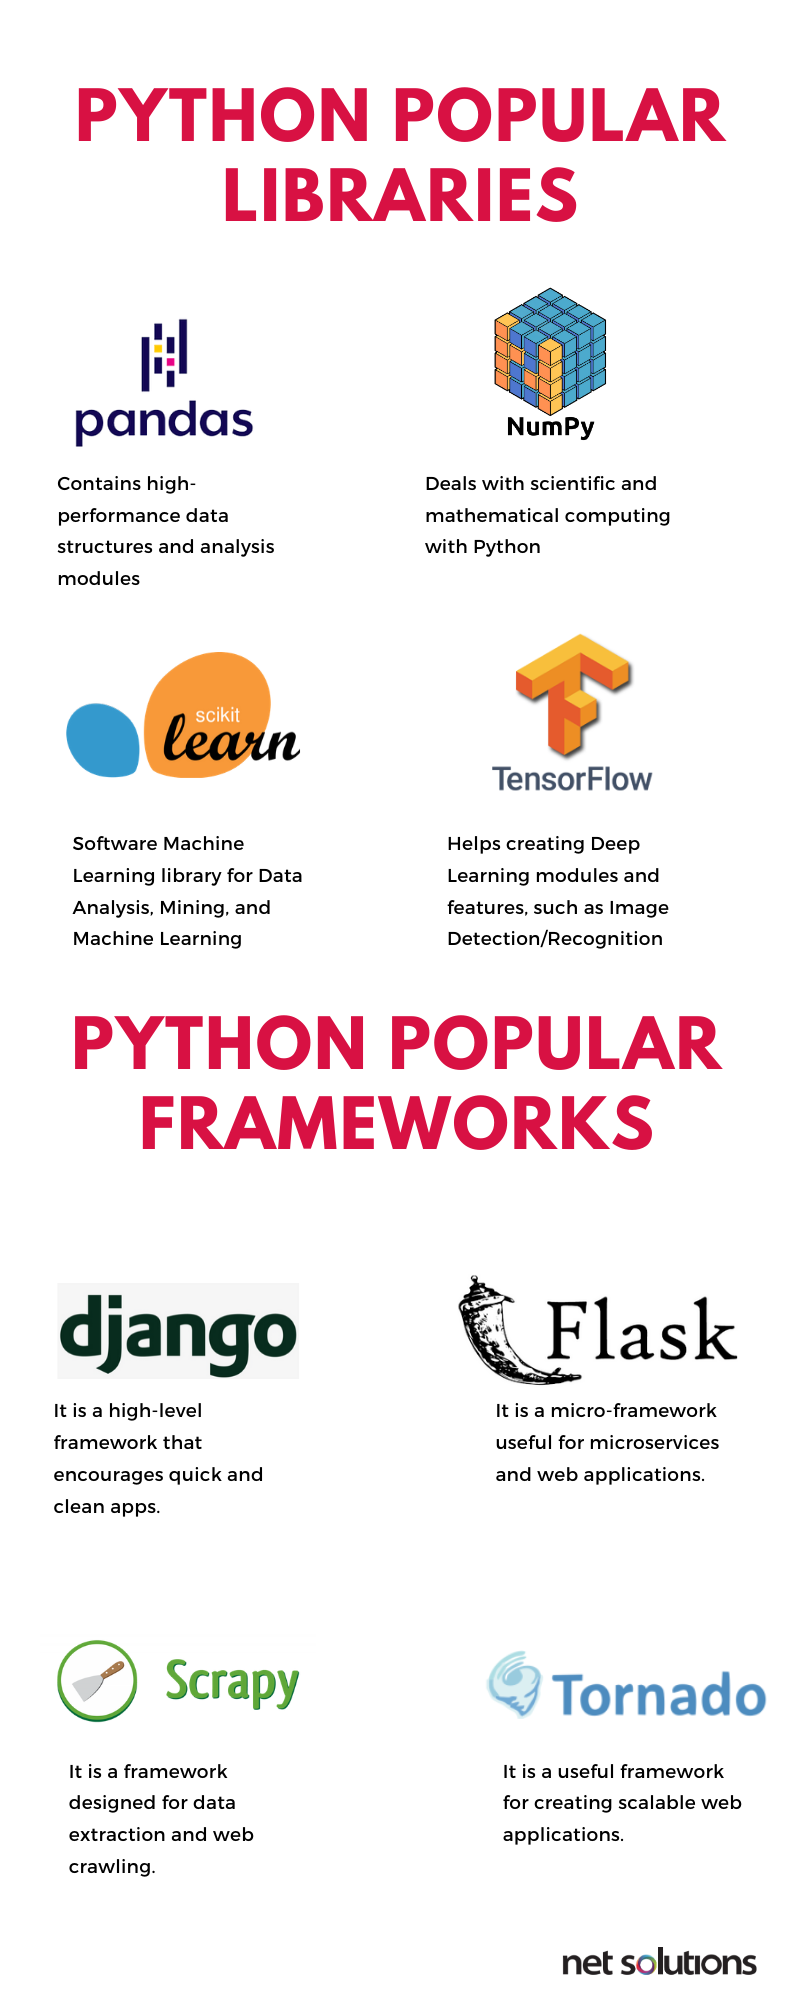 Top Python frameworks and libraries